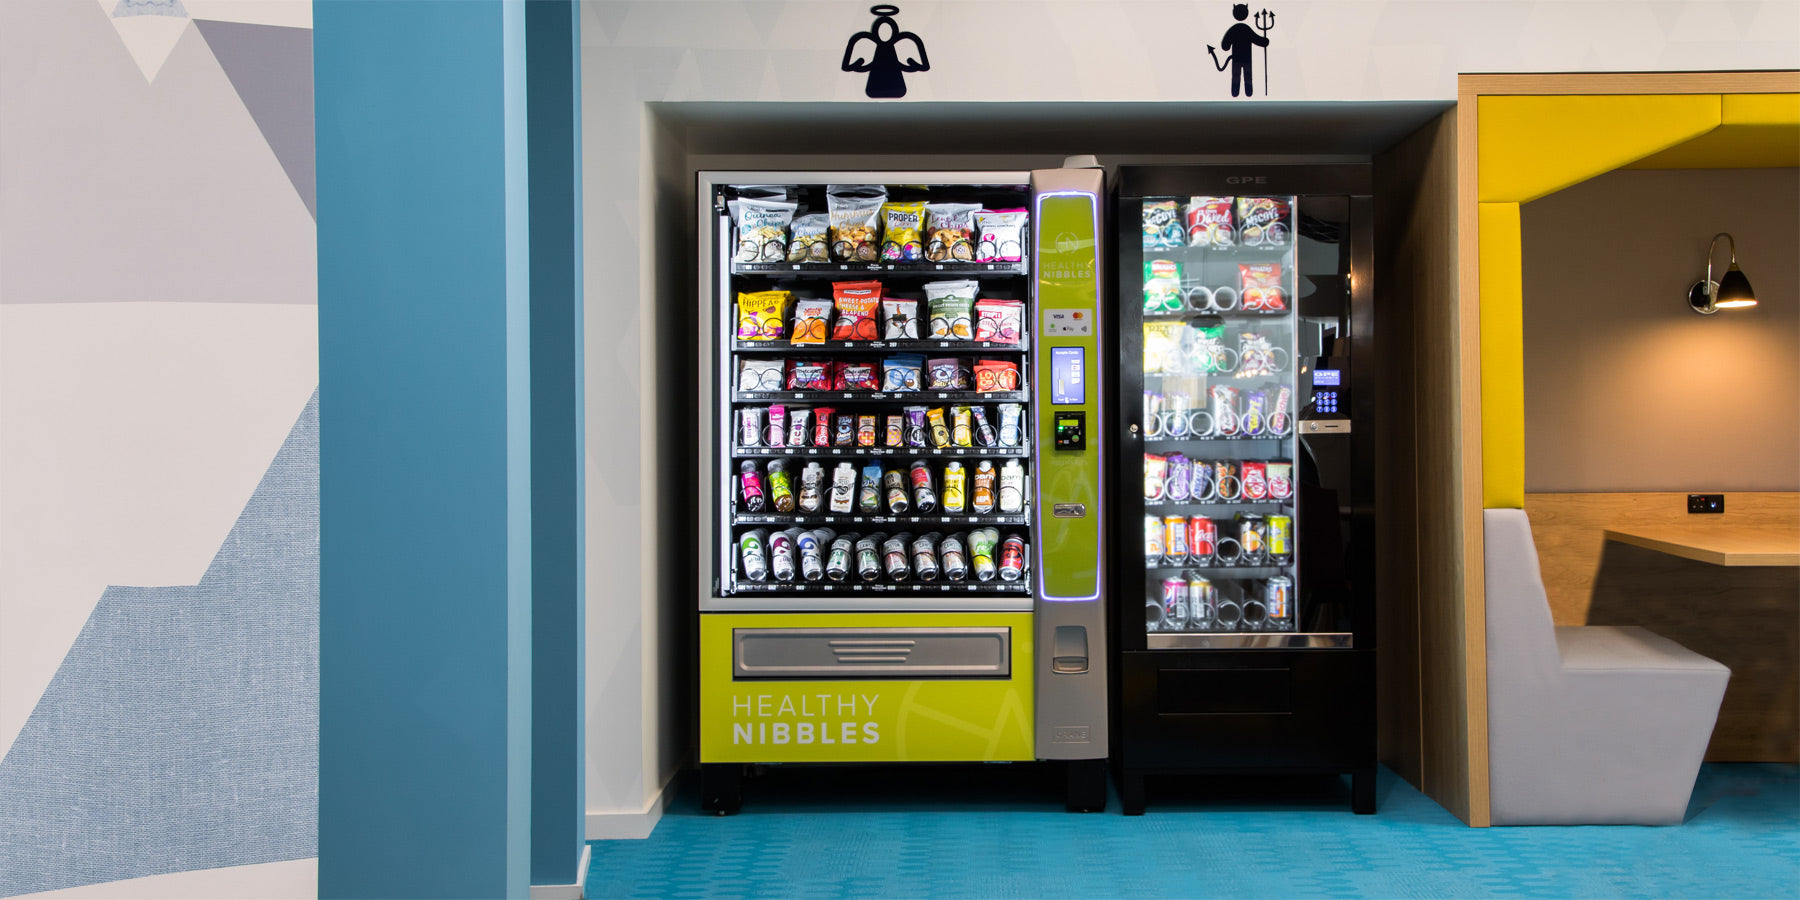 Healthy vending and snack boxes for offices to improve employee wellbeing